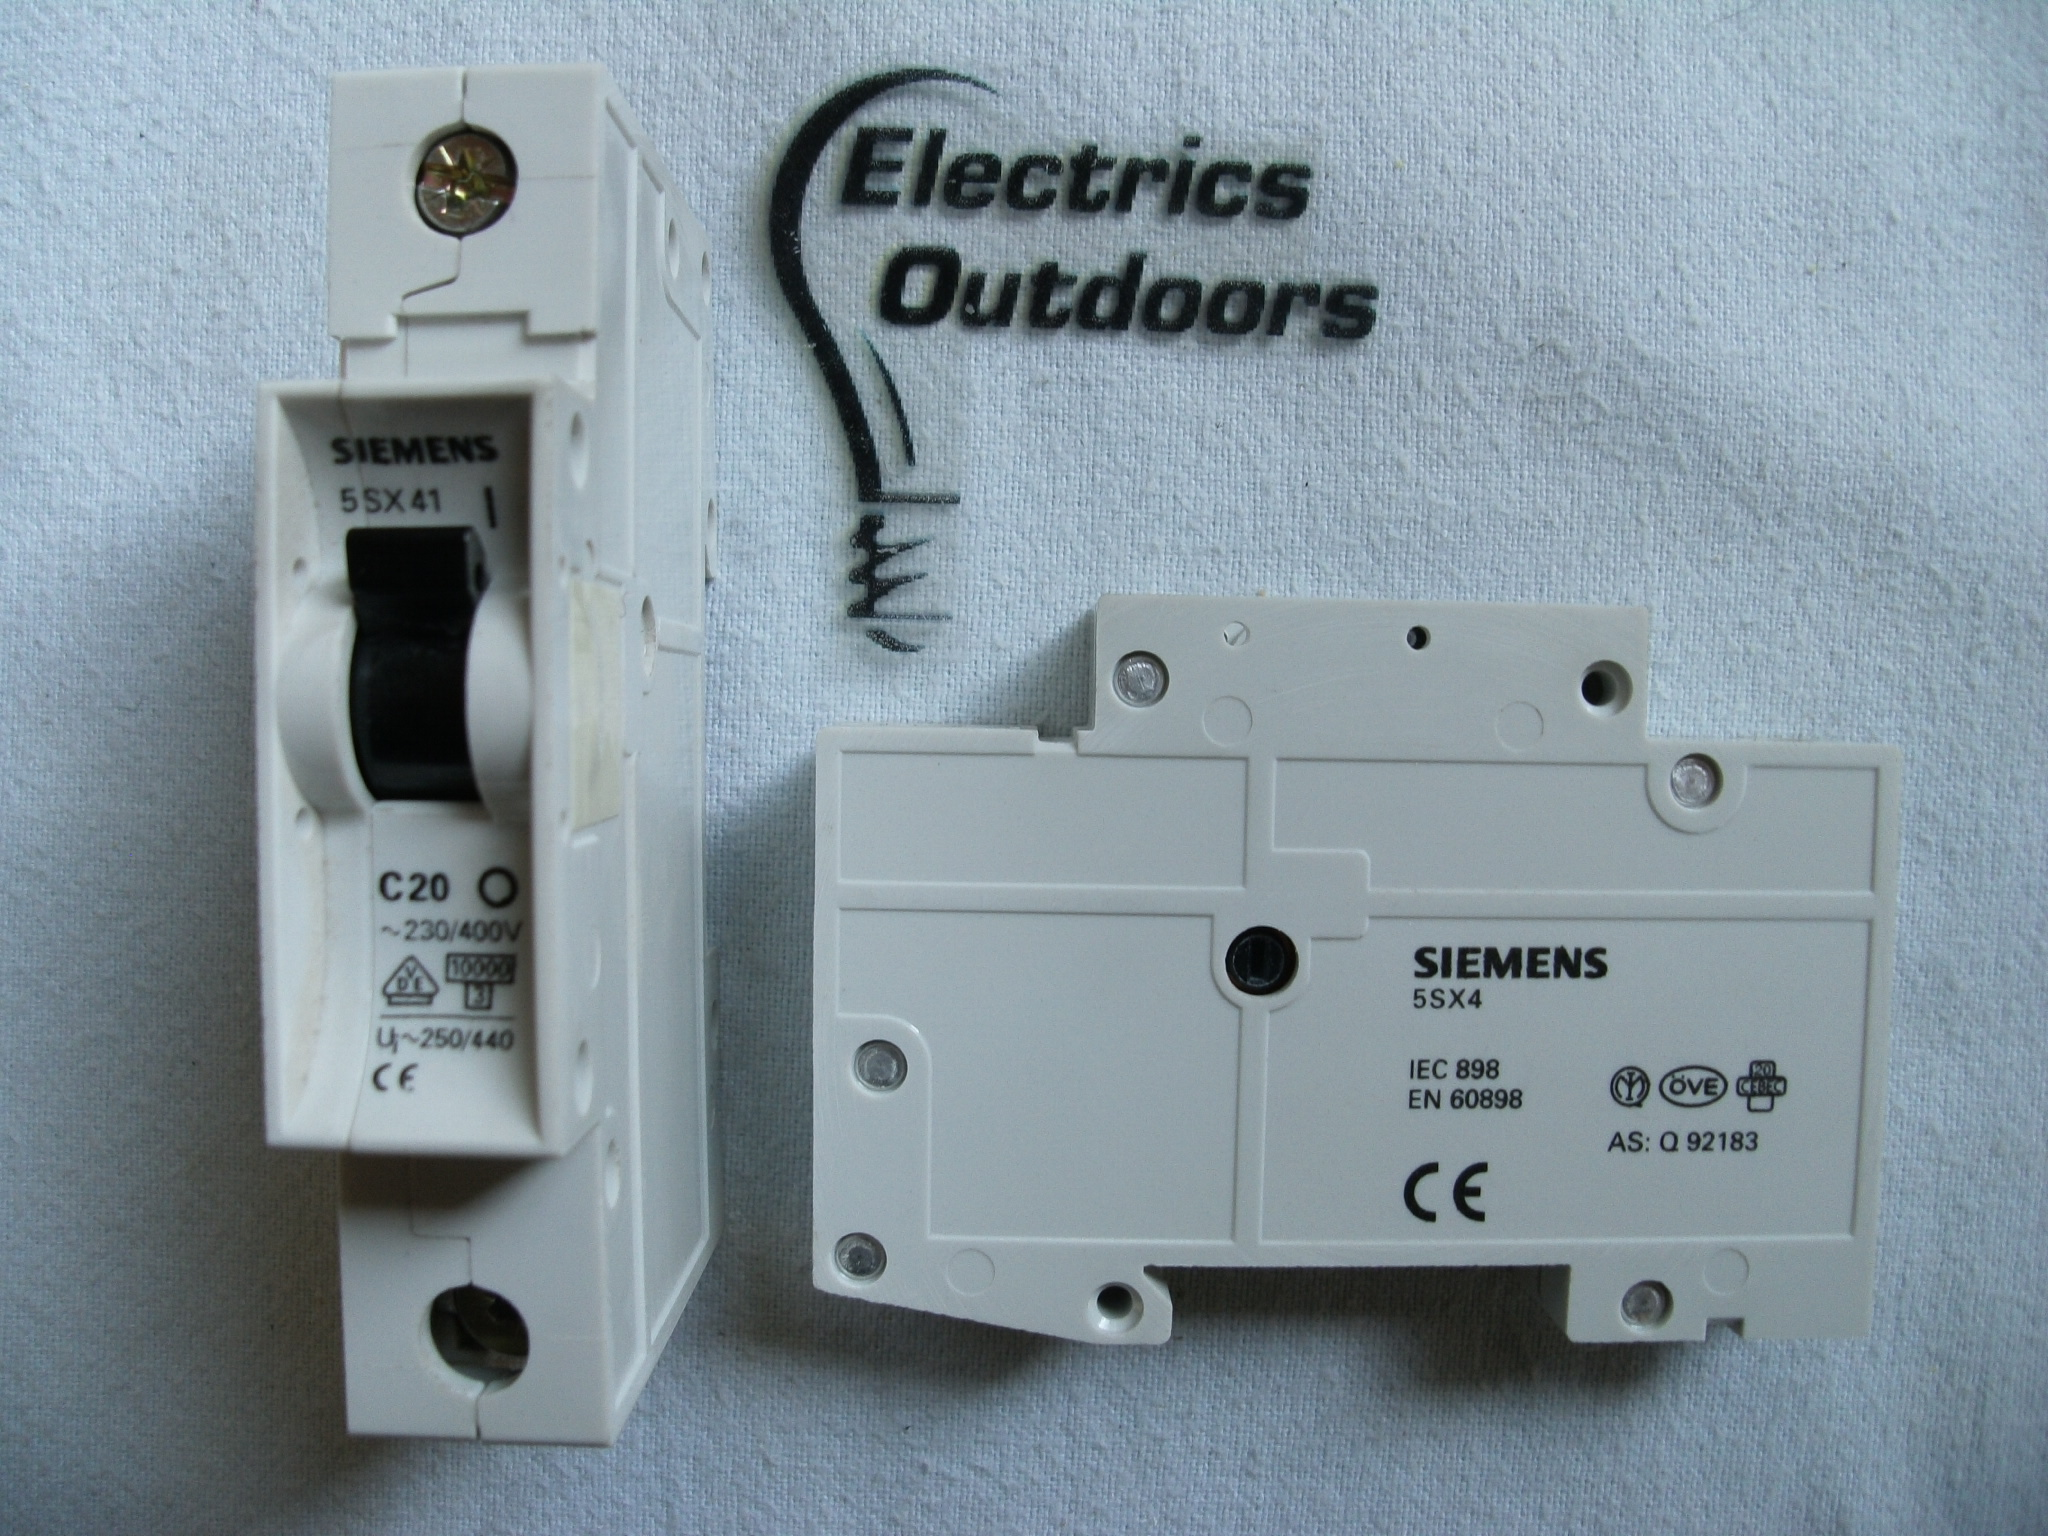 SIEMENS 20 AMP TYPE C 10KA 240V SINGLE POLE MCB CIRCUIT BREAKER 5SX41 BSEN 60898